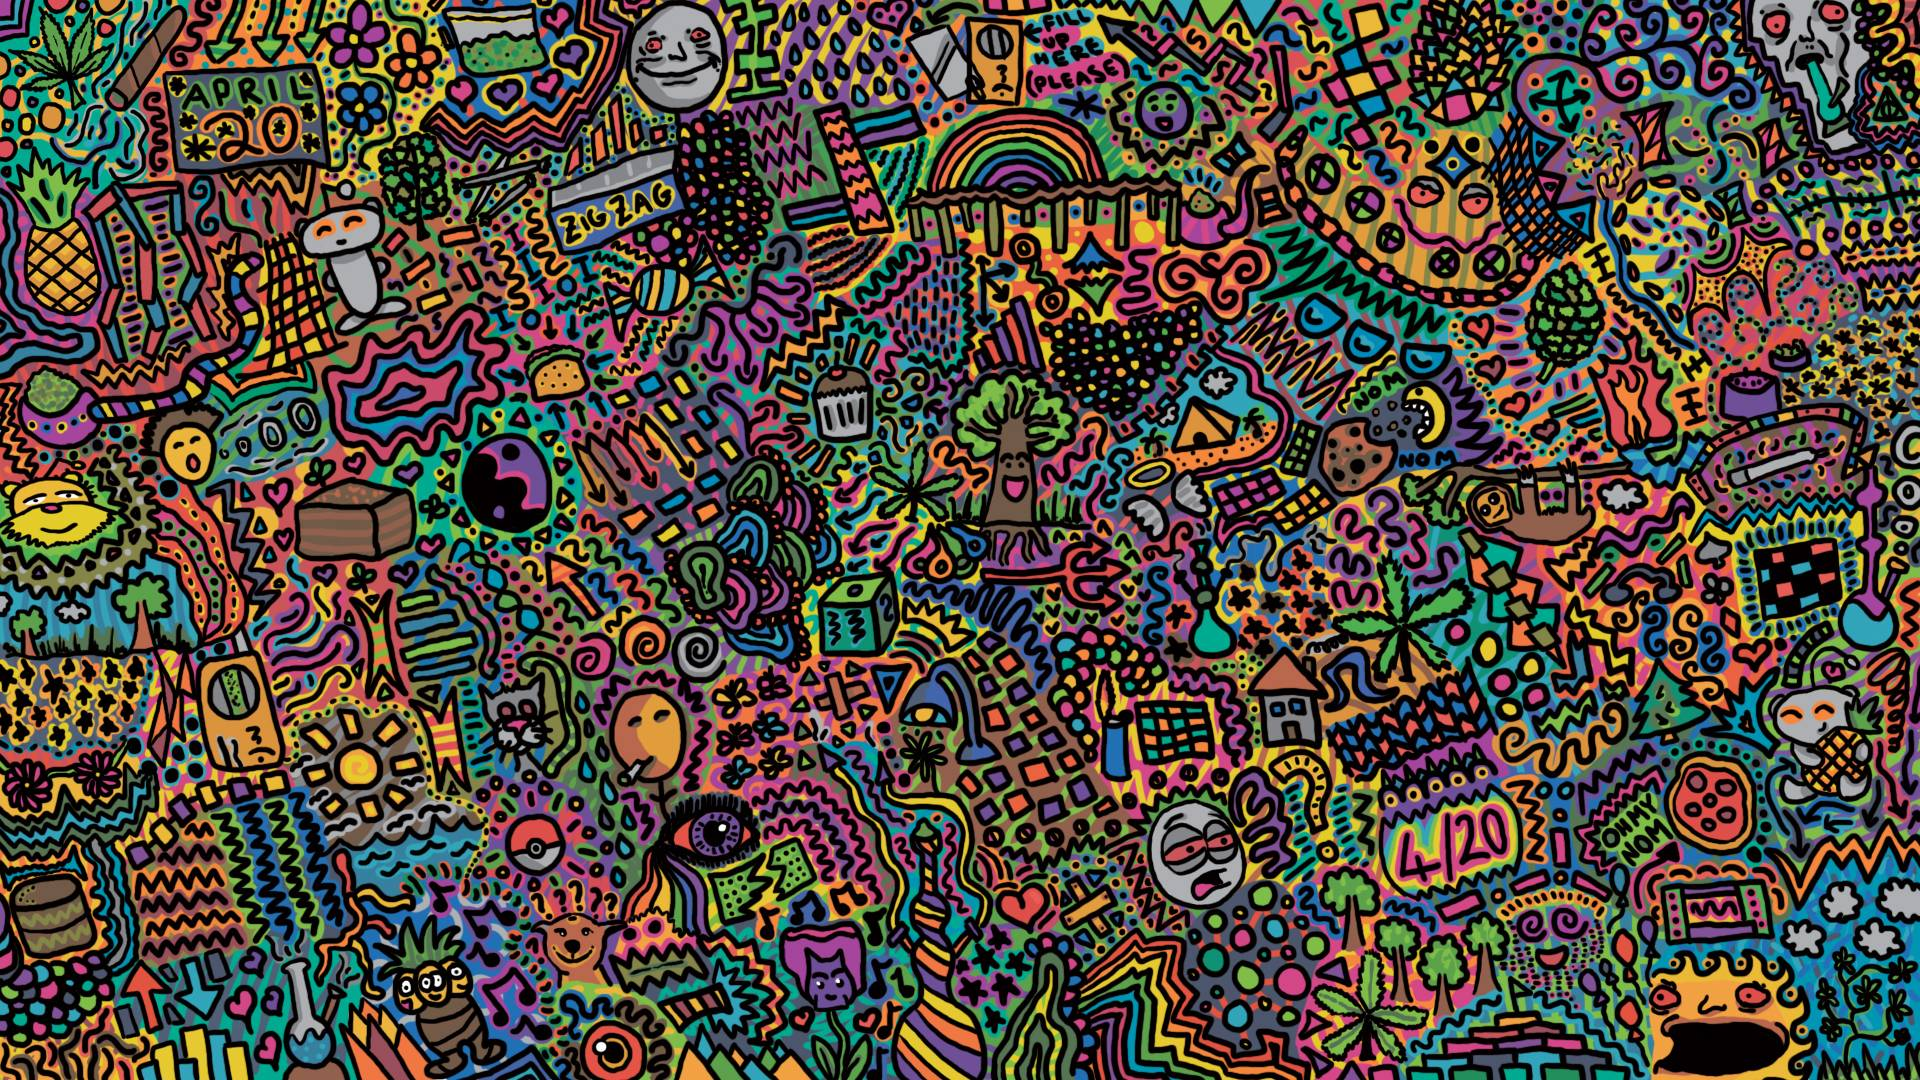 Psychedelic Computer Backgrounds - Wallpaper Cave